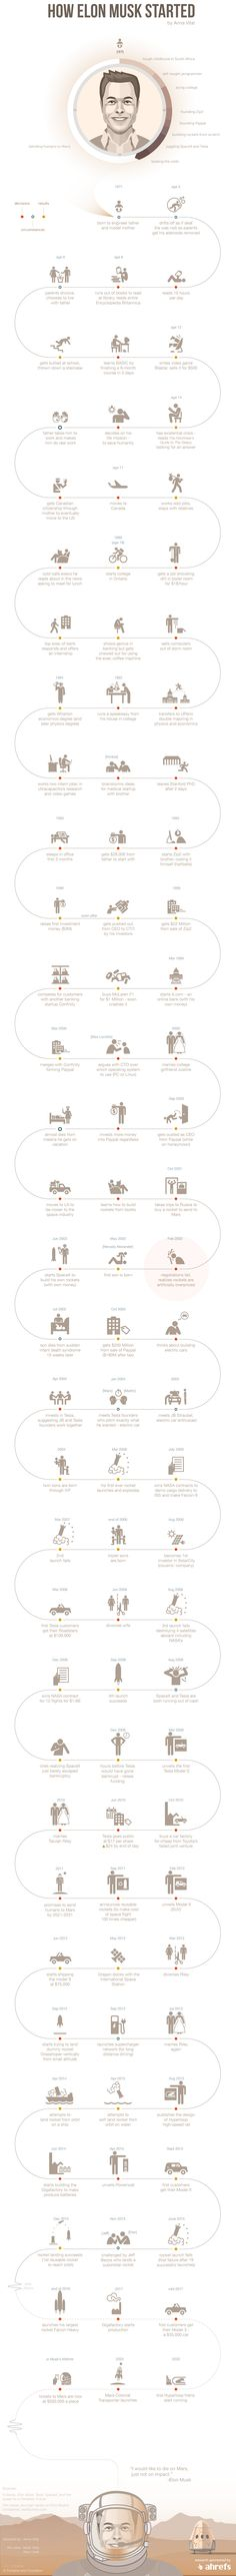 Follow Elon Musk's life path visualized in an infographic to see how he founded SpaceX, Tesla and PayPal, and learned to build rockets and electric cars.